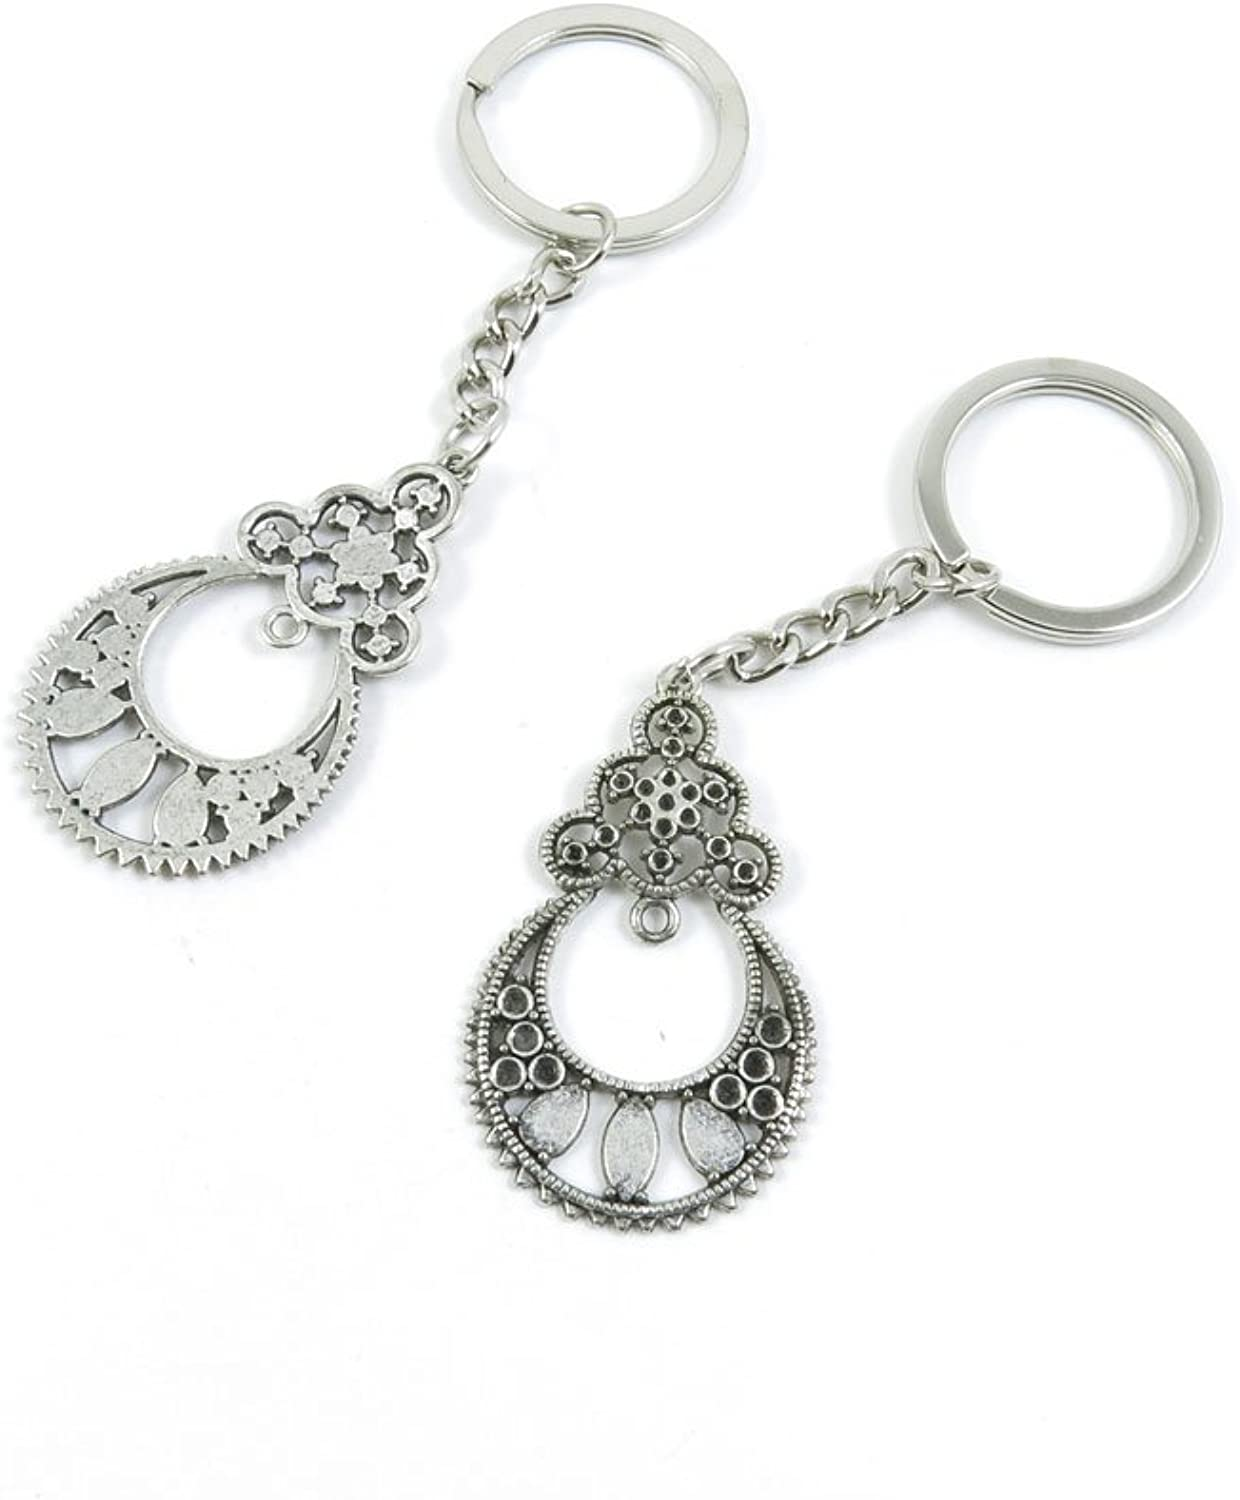 100 Pieces Keychain Keyring Door Car Key Chain Ring Tag Charms Bulk Supply Jewelry Making Clasp Findings P4EH7X Ear Drop Earring Connector Joiner